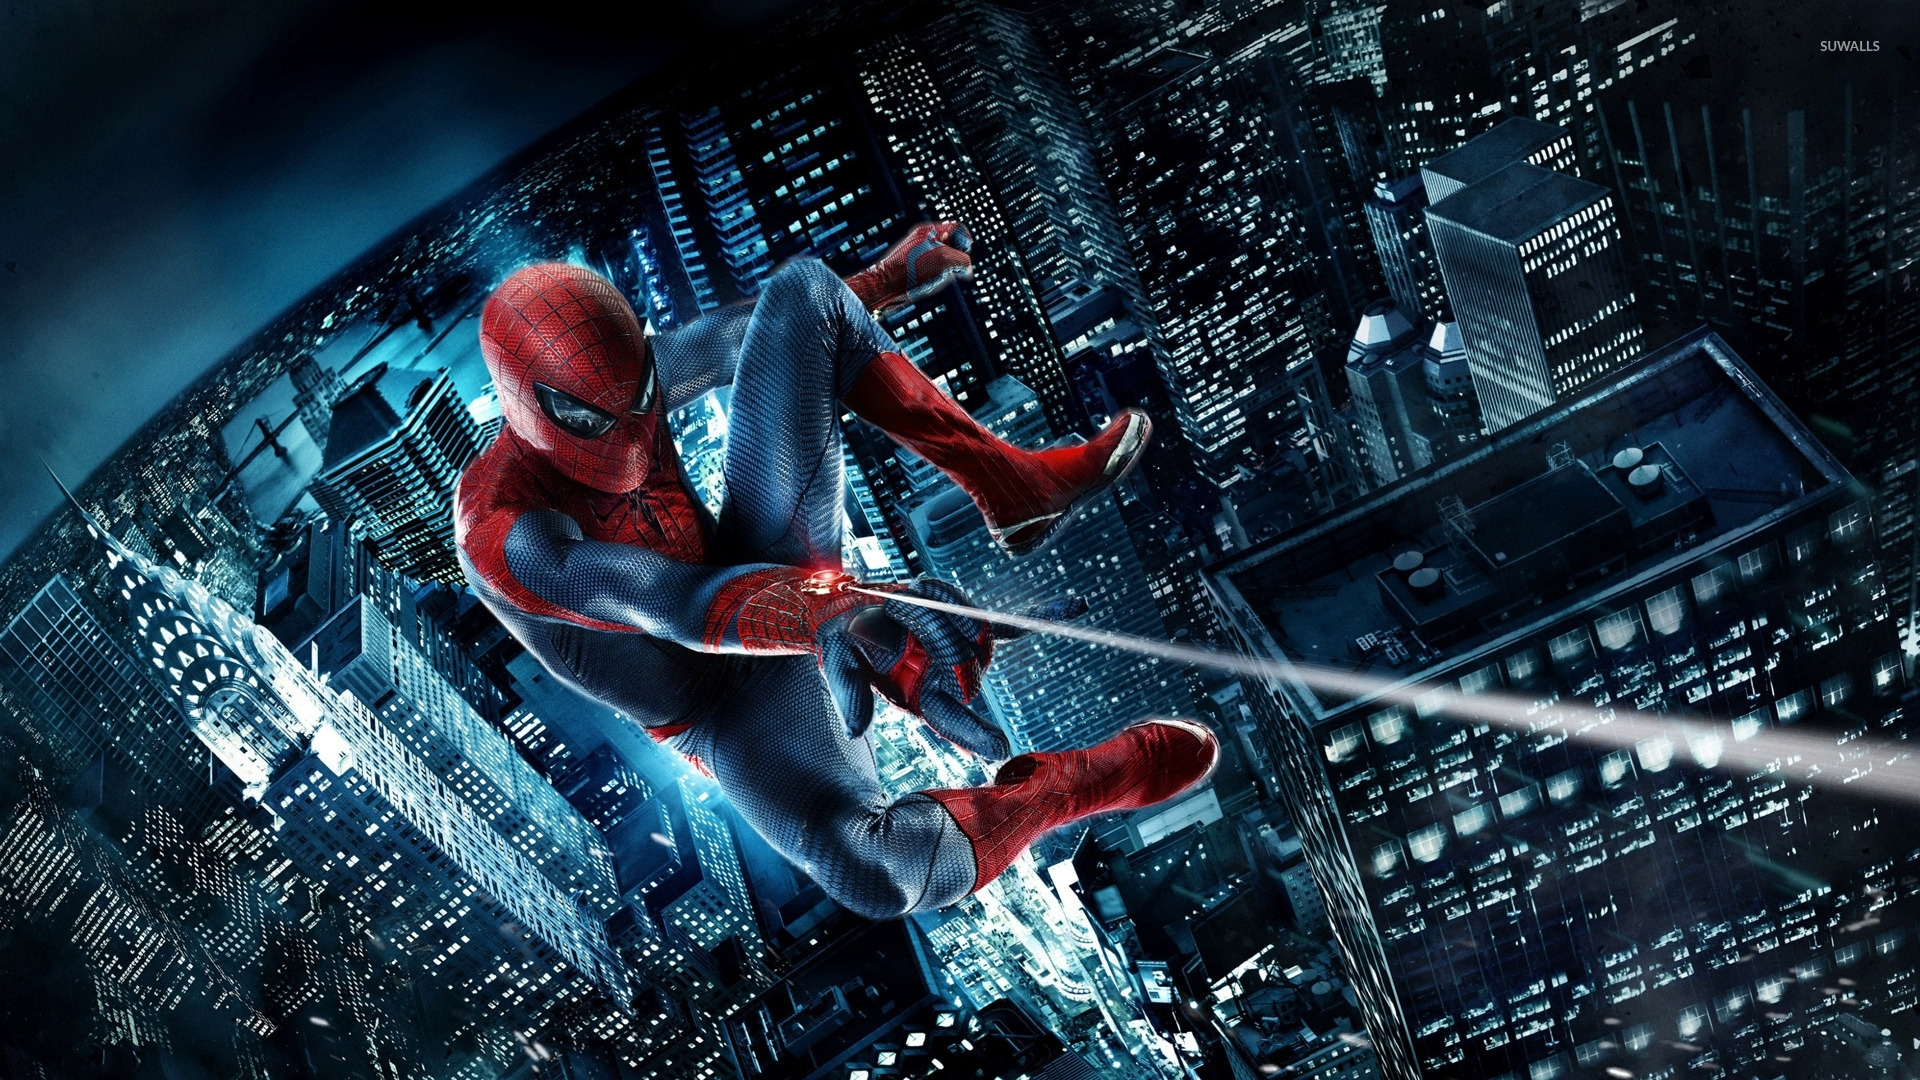 spider-man [3] wallpaper - movie wallpapers - #45427